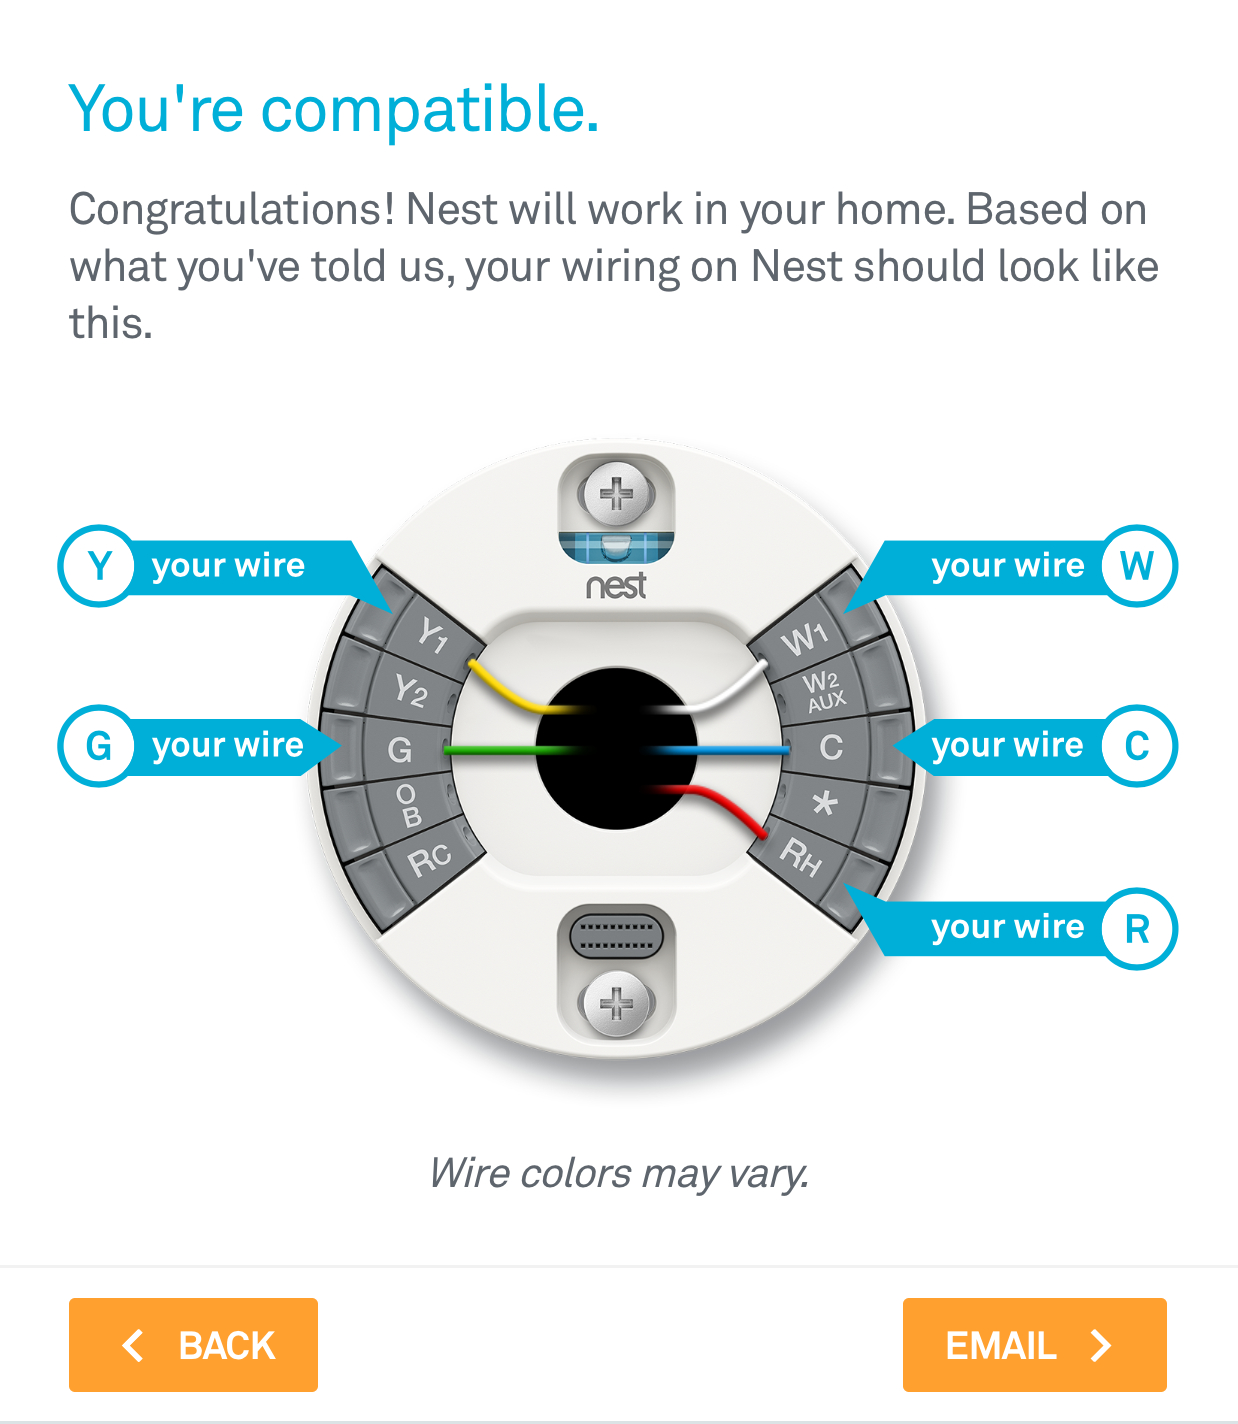 How To: Install The Nest Thermostat | The Craftsman Blog - Nest Thermostat Wiring Diagram.